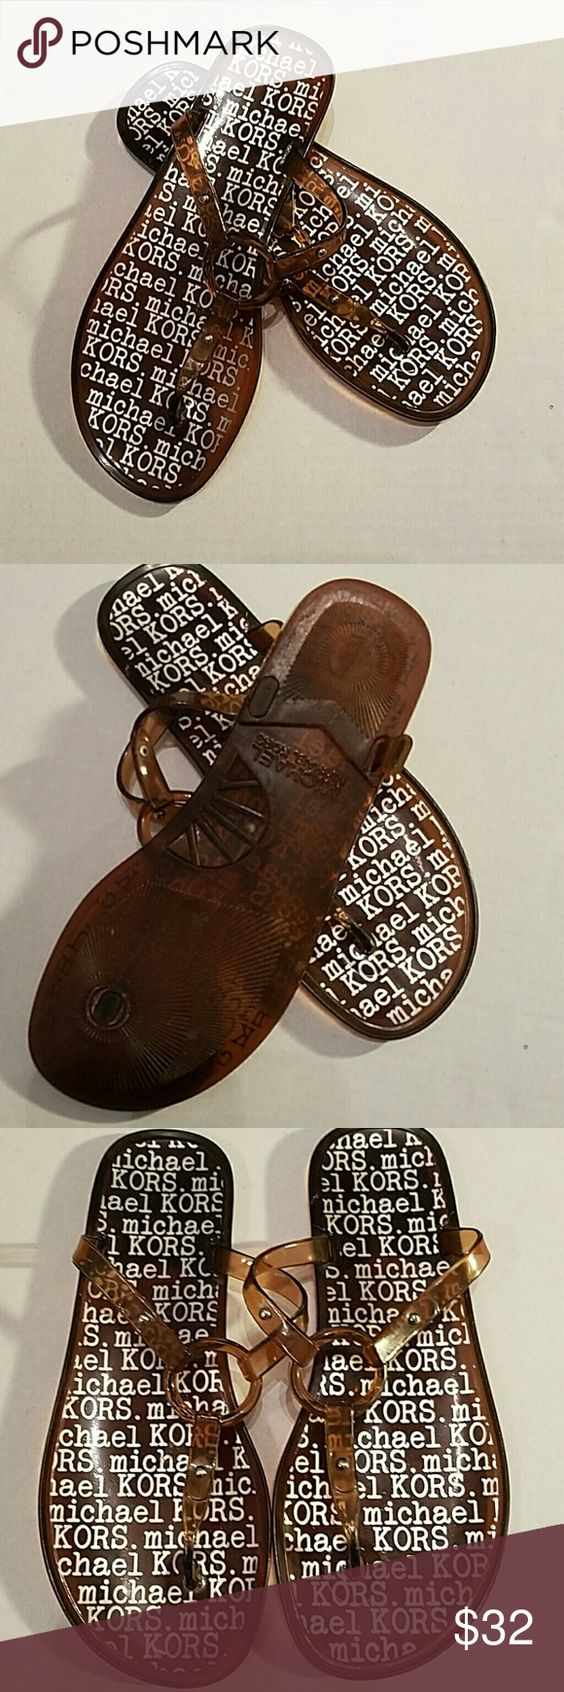 Michael Kors Sandles Size 7 plastic Sandles..these Sandles do not show the size although I know they are a size 7. Color is clear gold and will go with anything MICHAEL Michael Kors Shoes Sandals